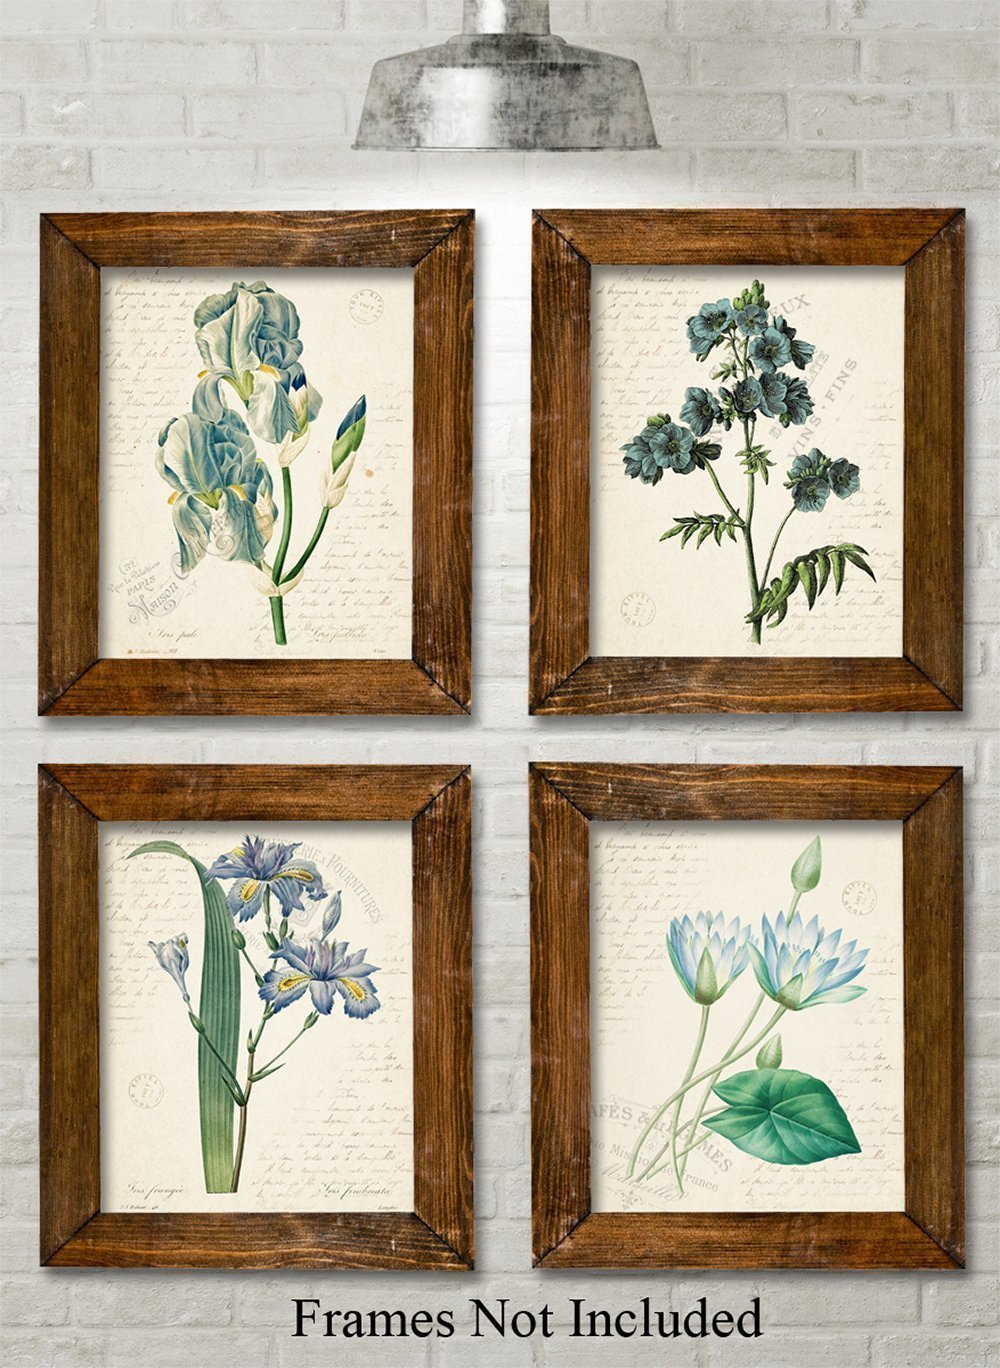 Blue Paris Botanicals Art Prints - Set of Four Prints (8x10) Unframed - Great for Bedroom/Bathroom Decor by Personalized Signs by Lone Star Art